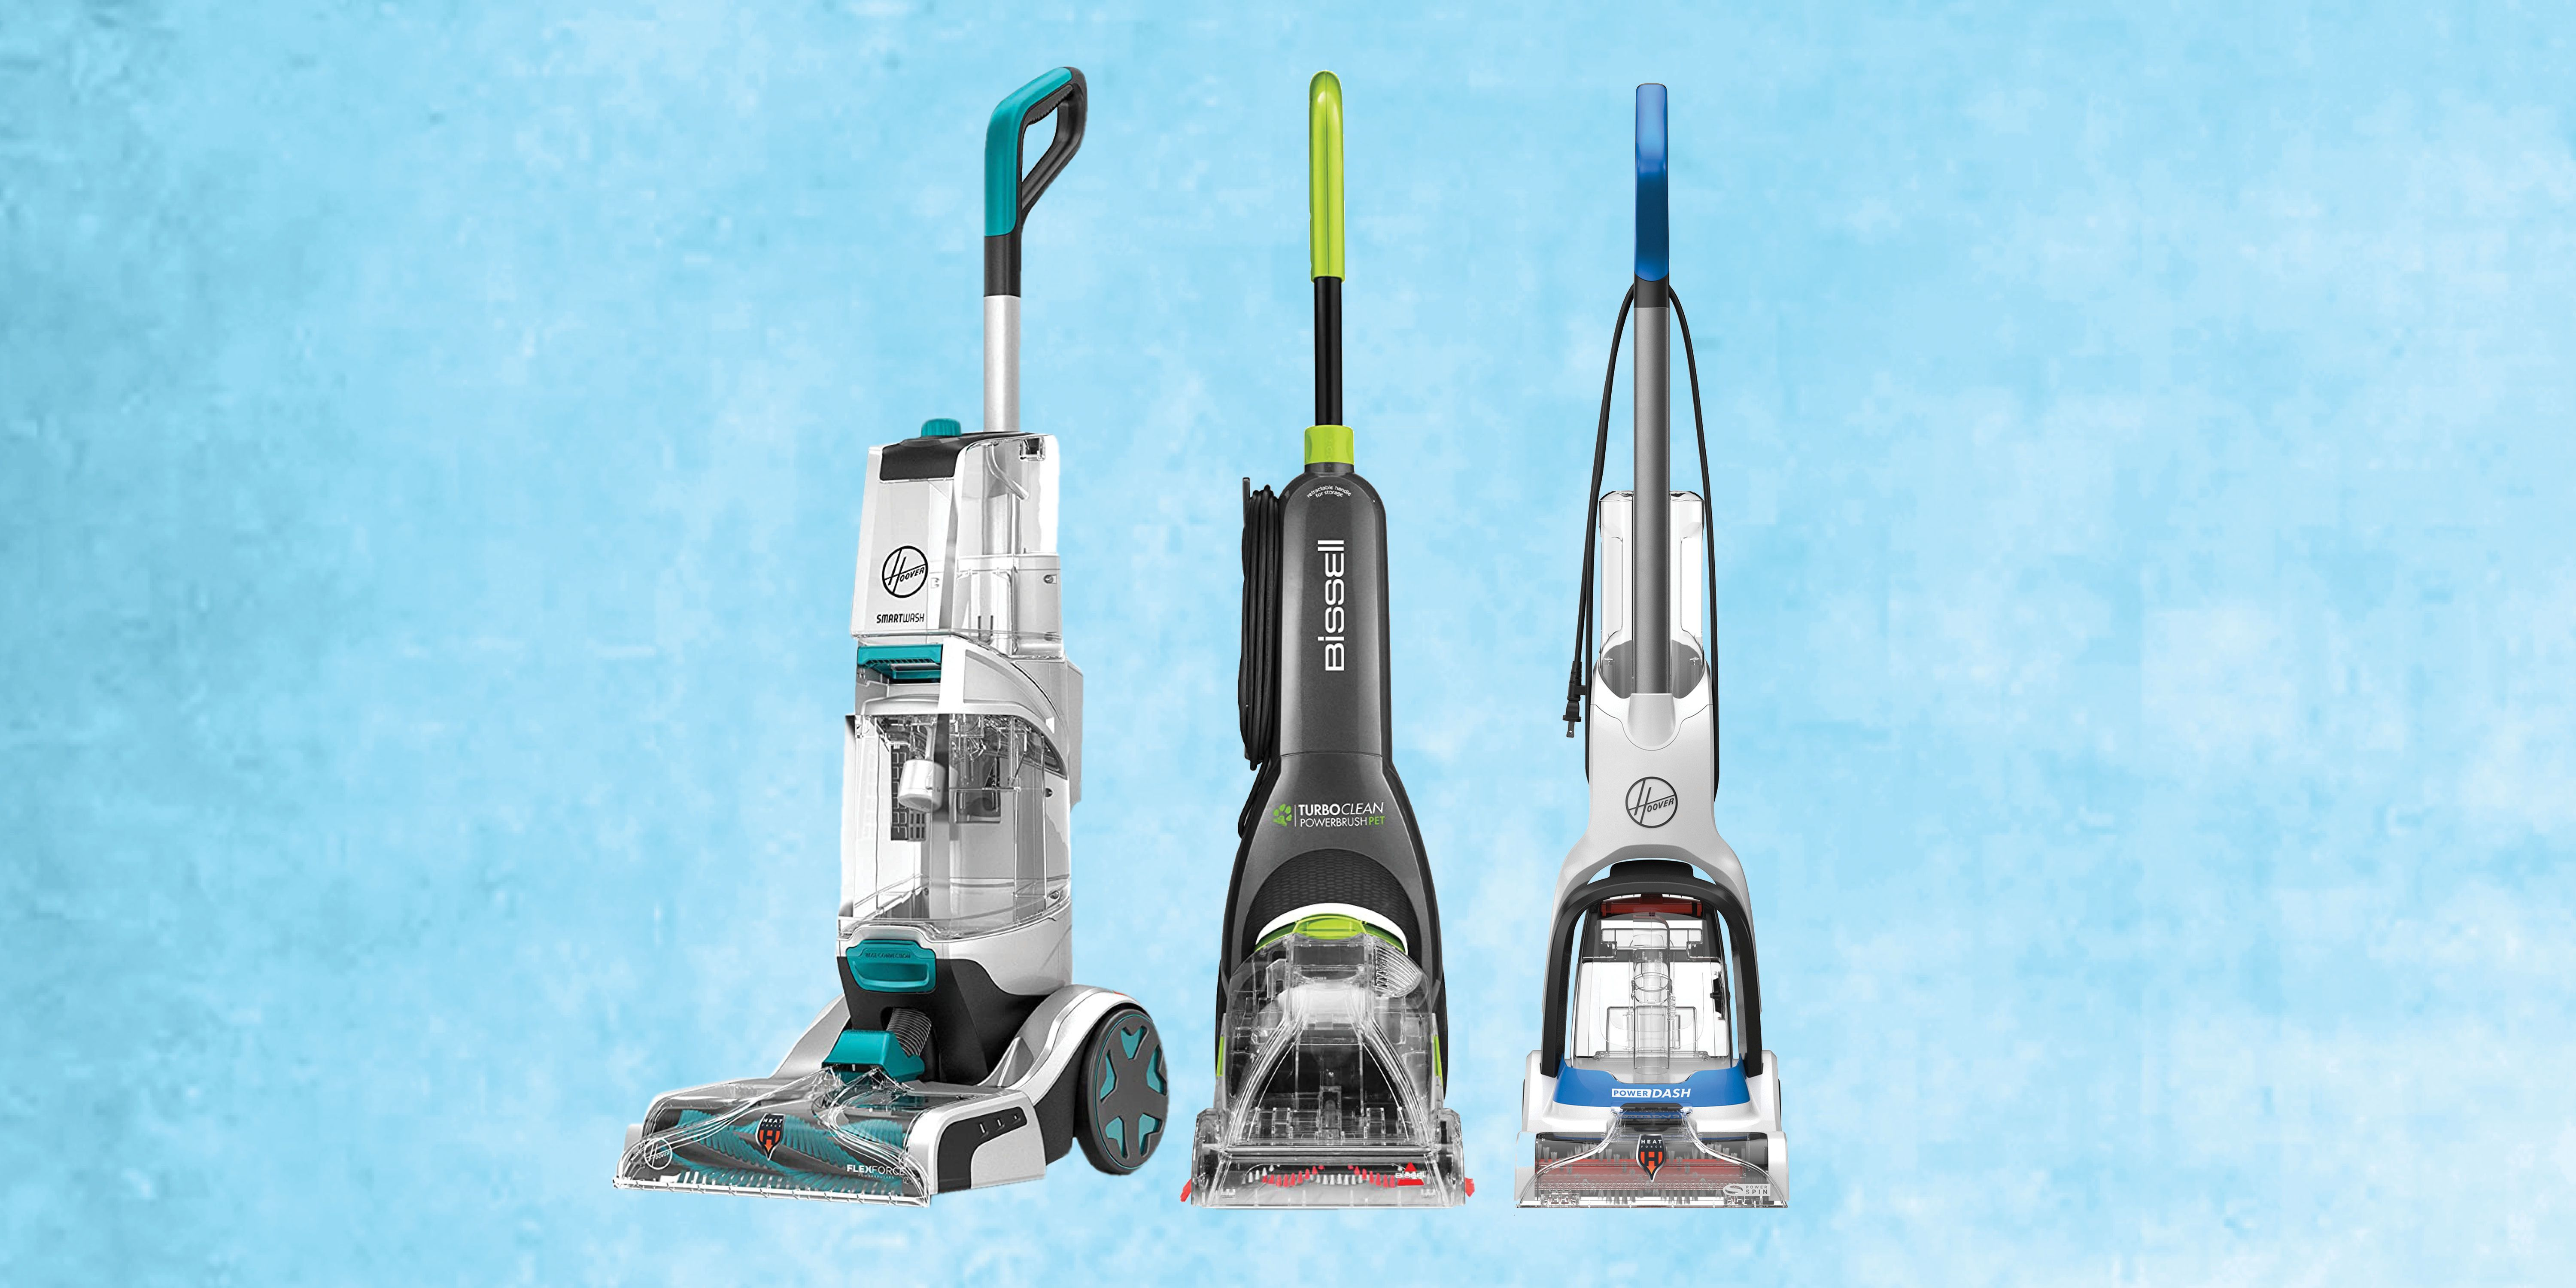 7 Best Carpet Cleaners You Can Buy Online In 2021 Top Reviewed Carpet Cleaners